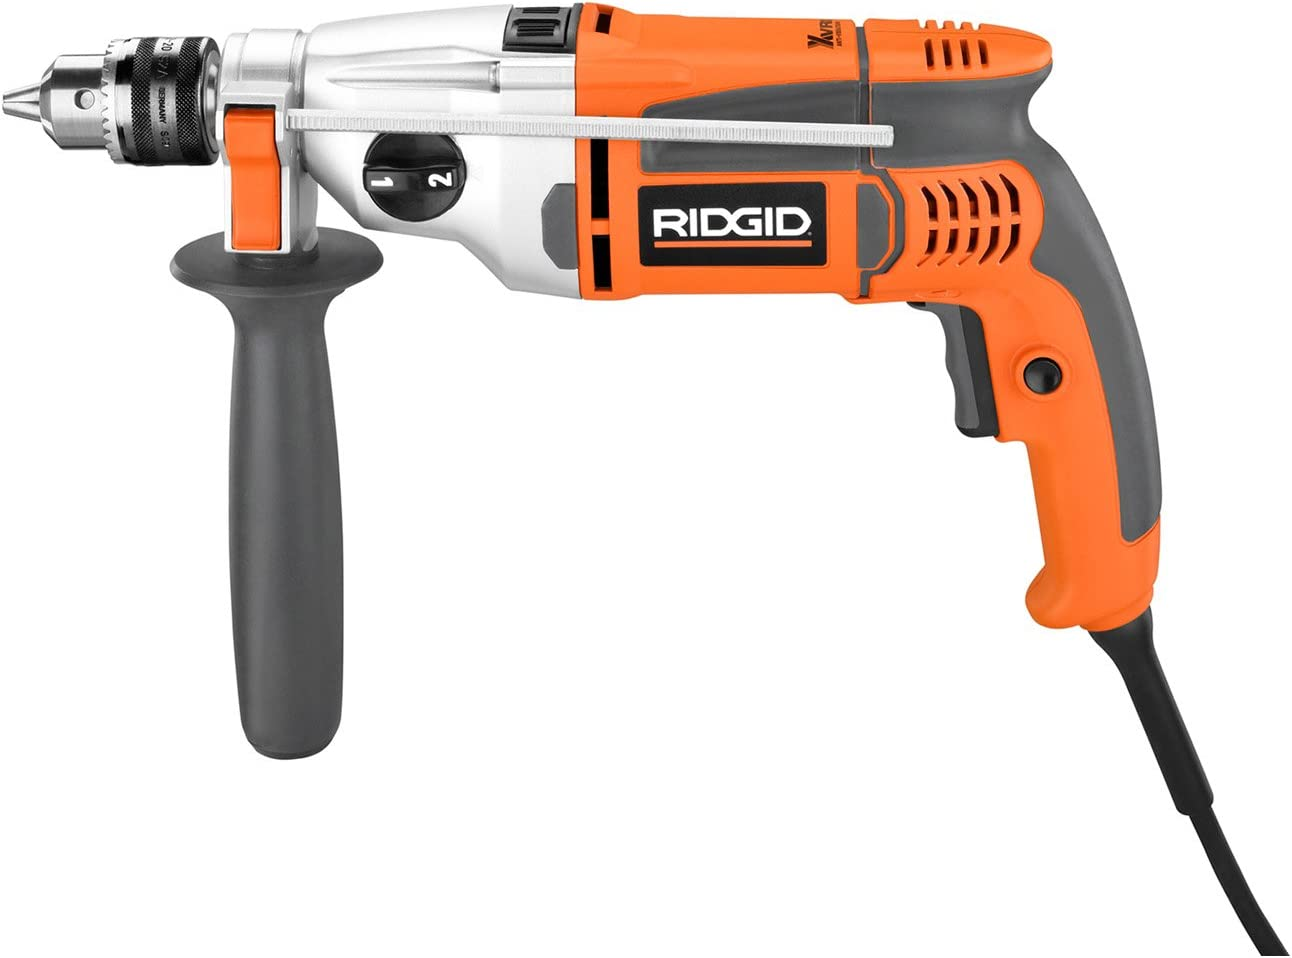 RIDGID ZRR5011 1 2-inch Heavy-Duty VSR Hammer Pulse Drill Renewed